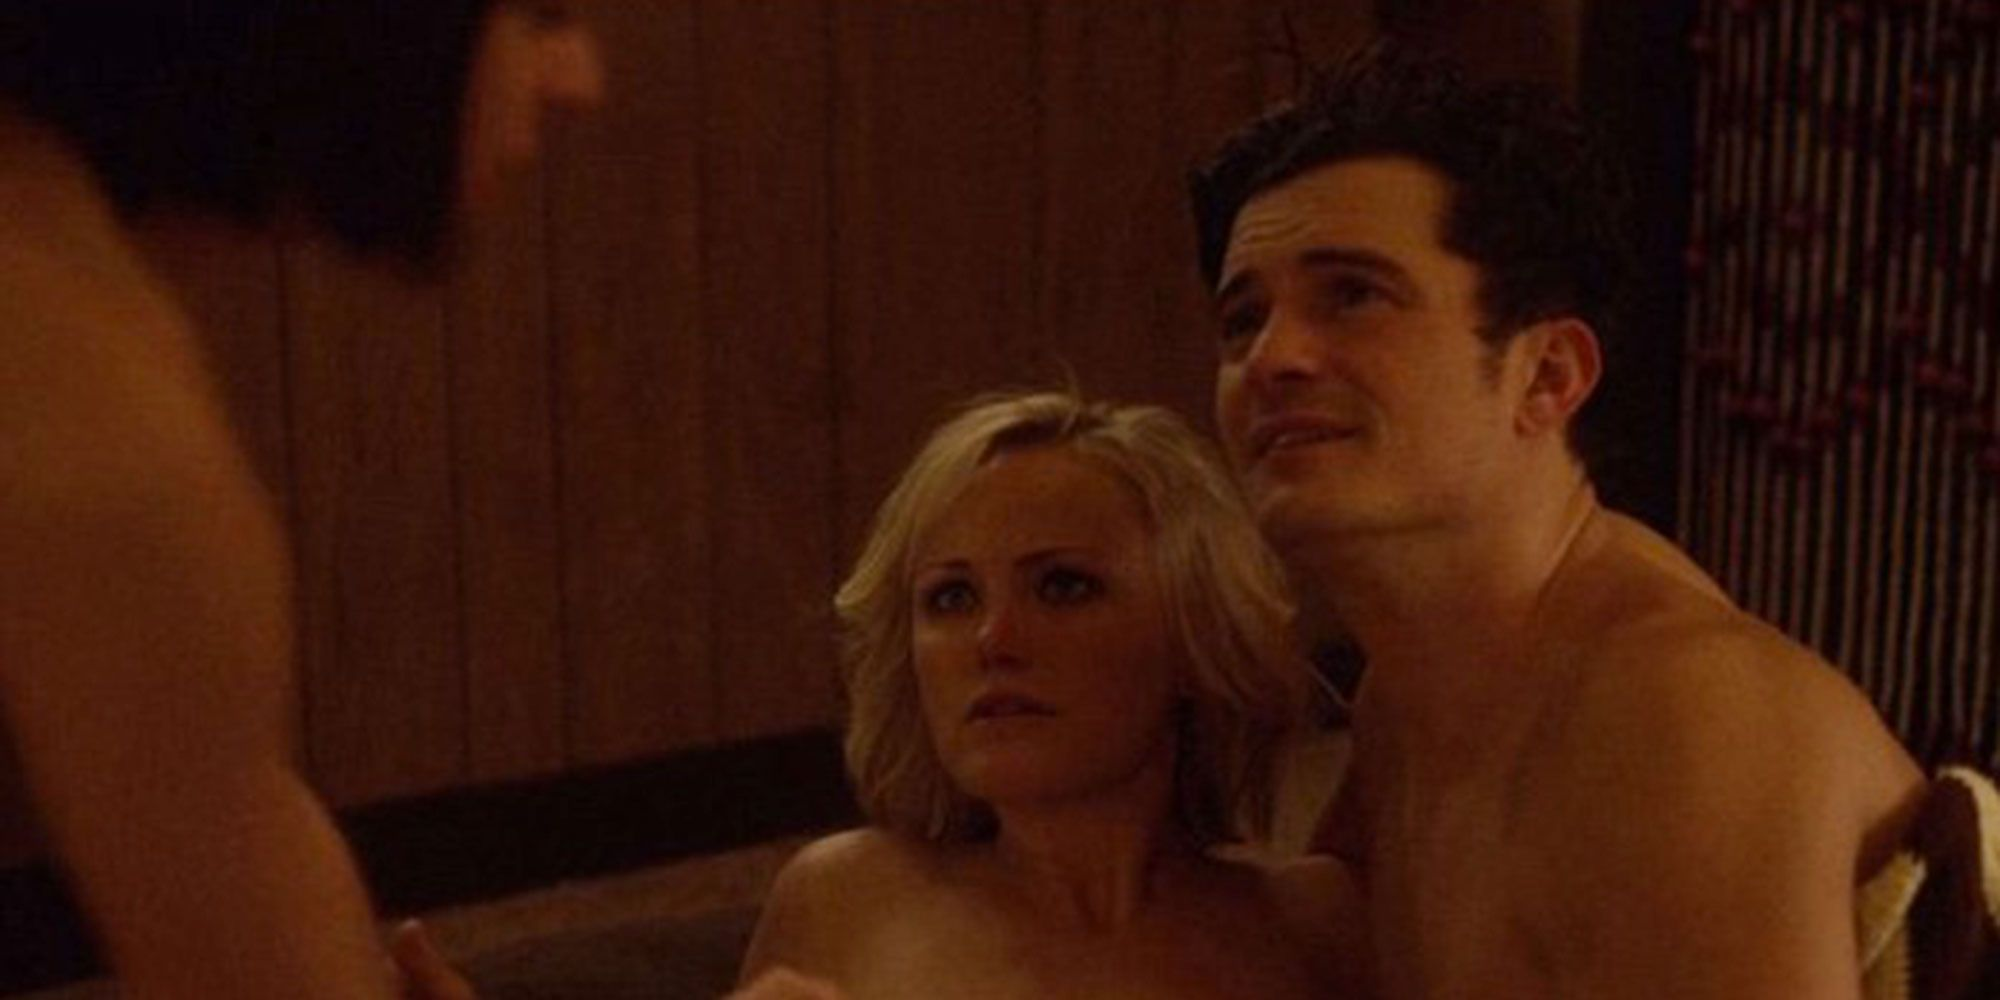 Threesome scene in Easy with Orlando Bloom